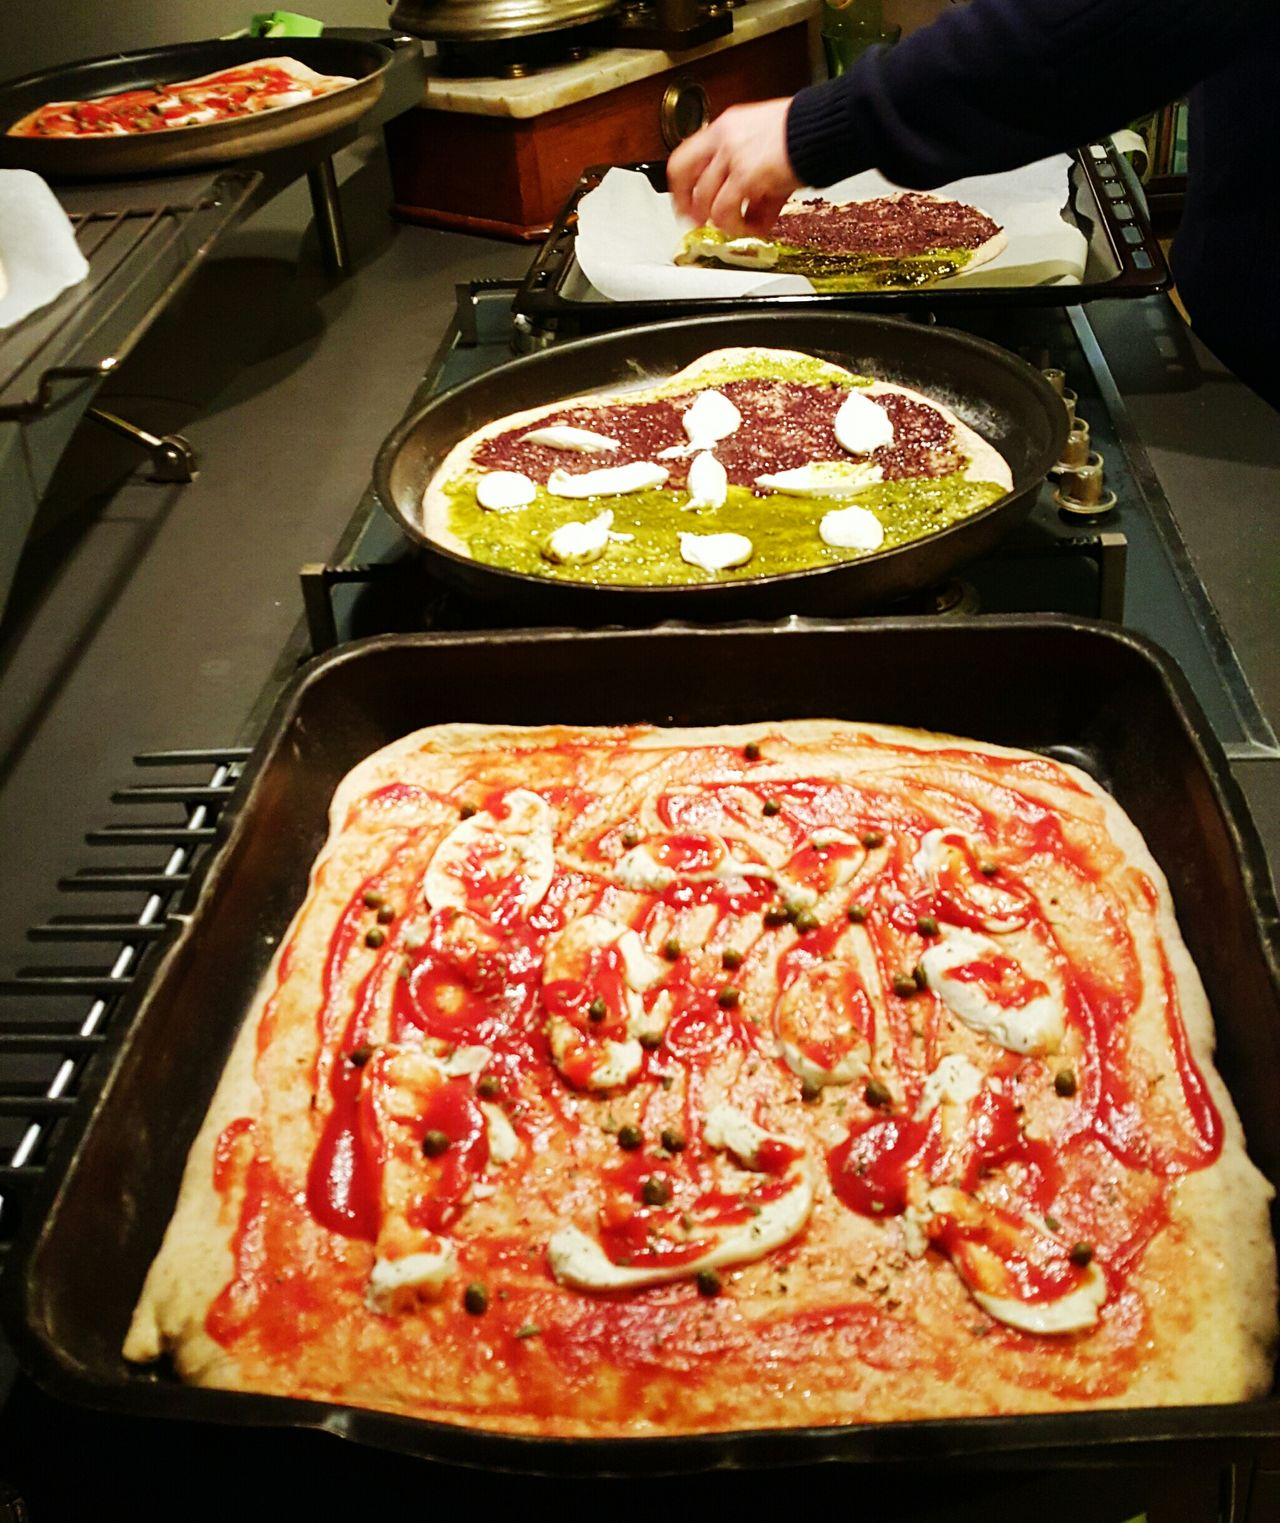 Pizza Pizza Time Coocking Pizzalover Cooking Bakery Italy Italy❤️ Recept Pizza <3 Pizza🍕 Pizzatime Pizza! Olive Oliveoil Learn And Shoot: Balancing Elements Photography In Motion Things I Like Show Us Your Takeaway! Telling Stories Differently